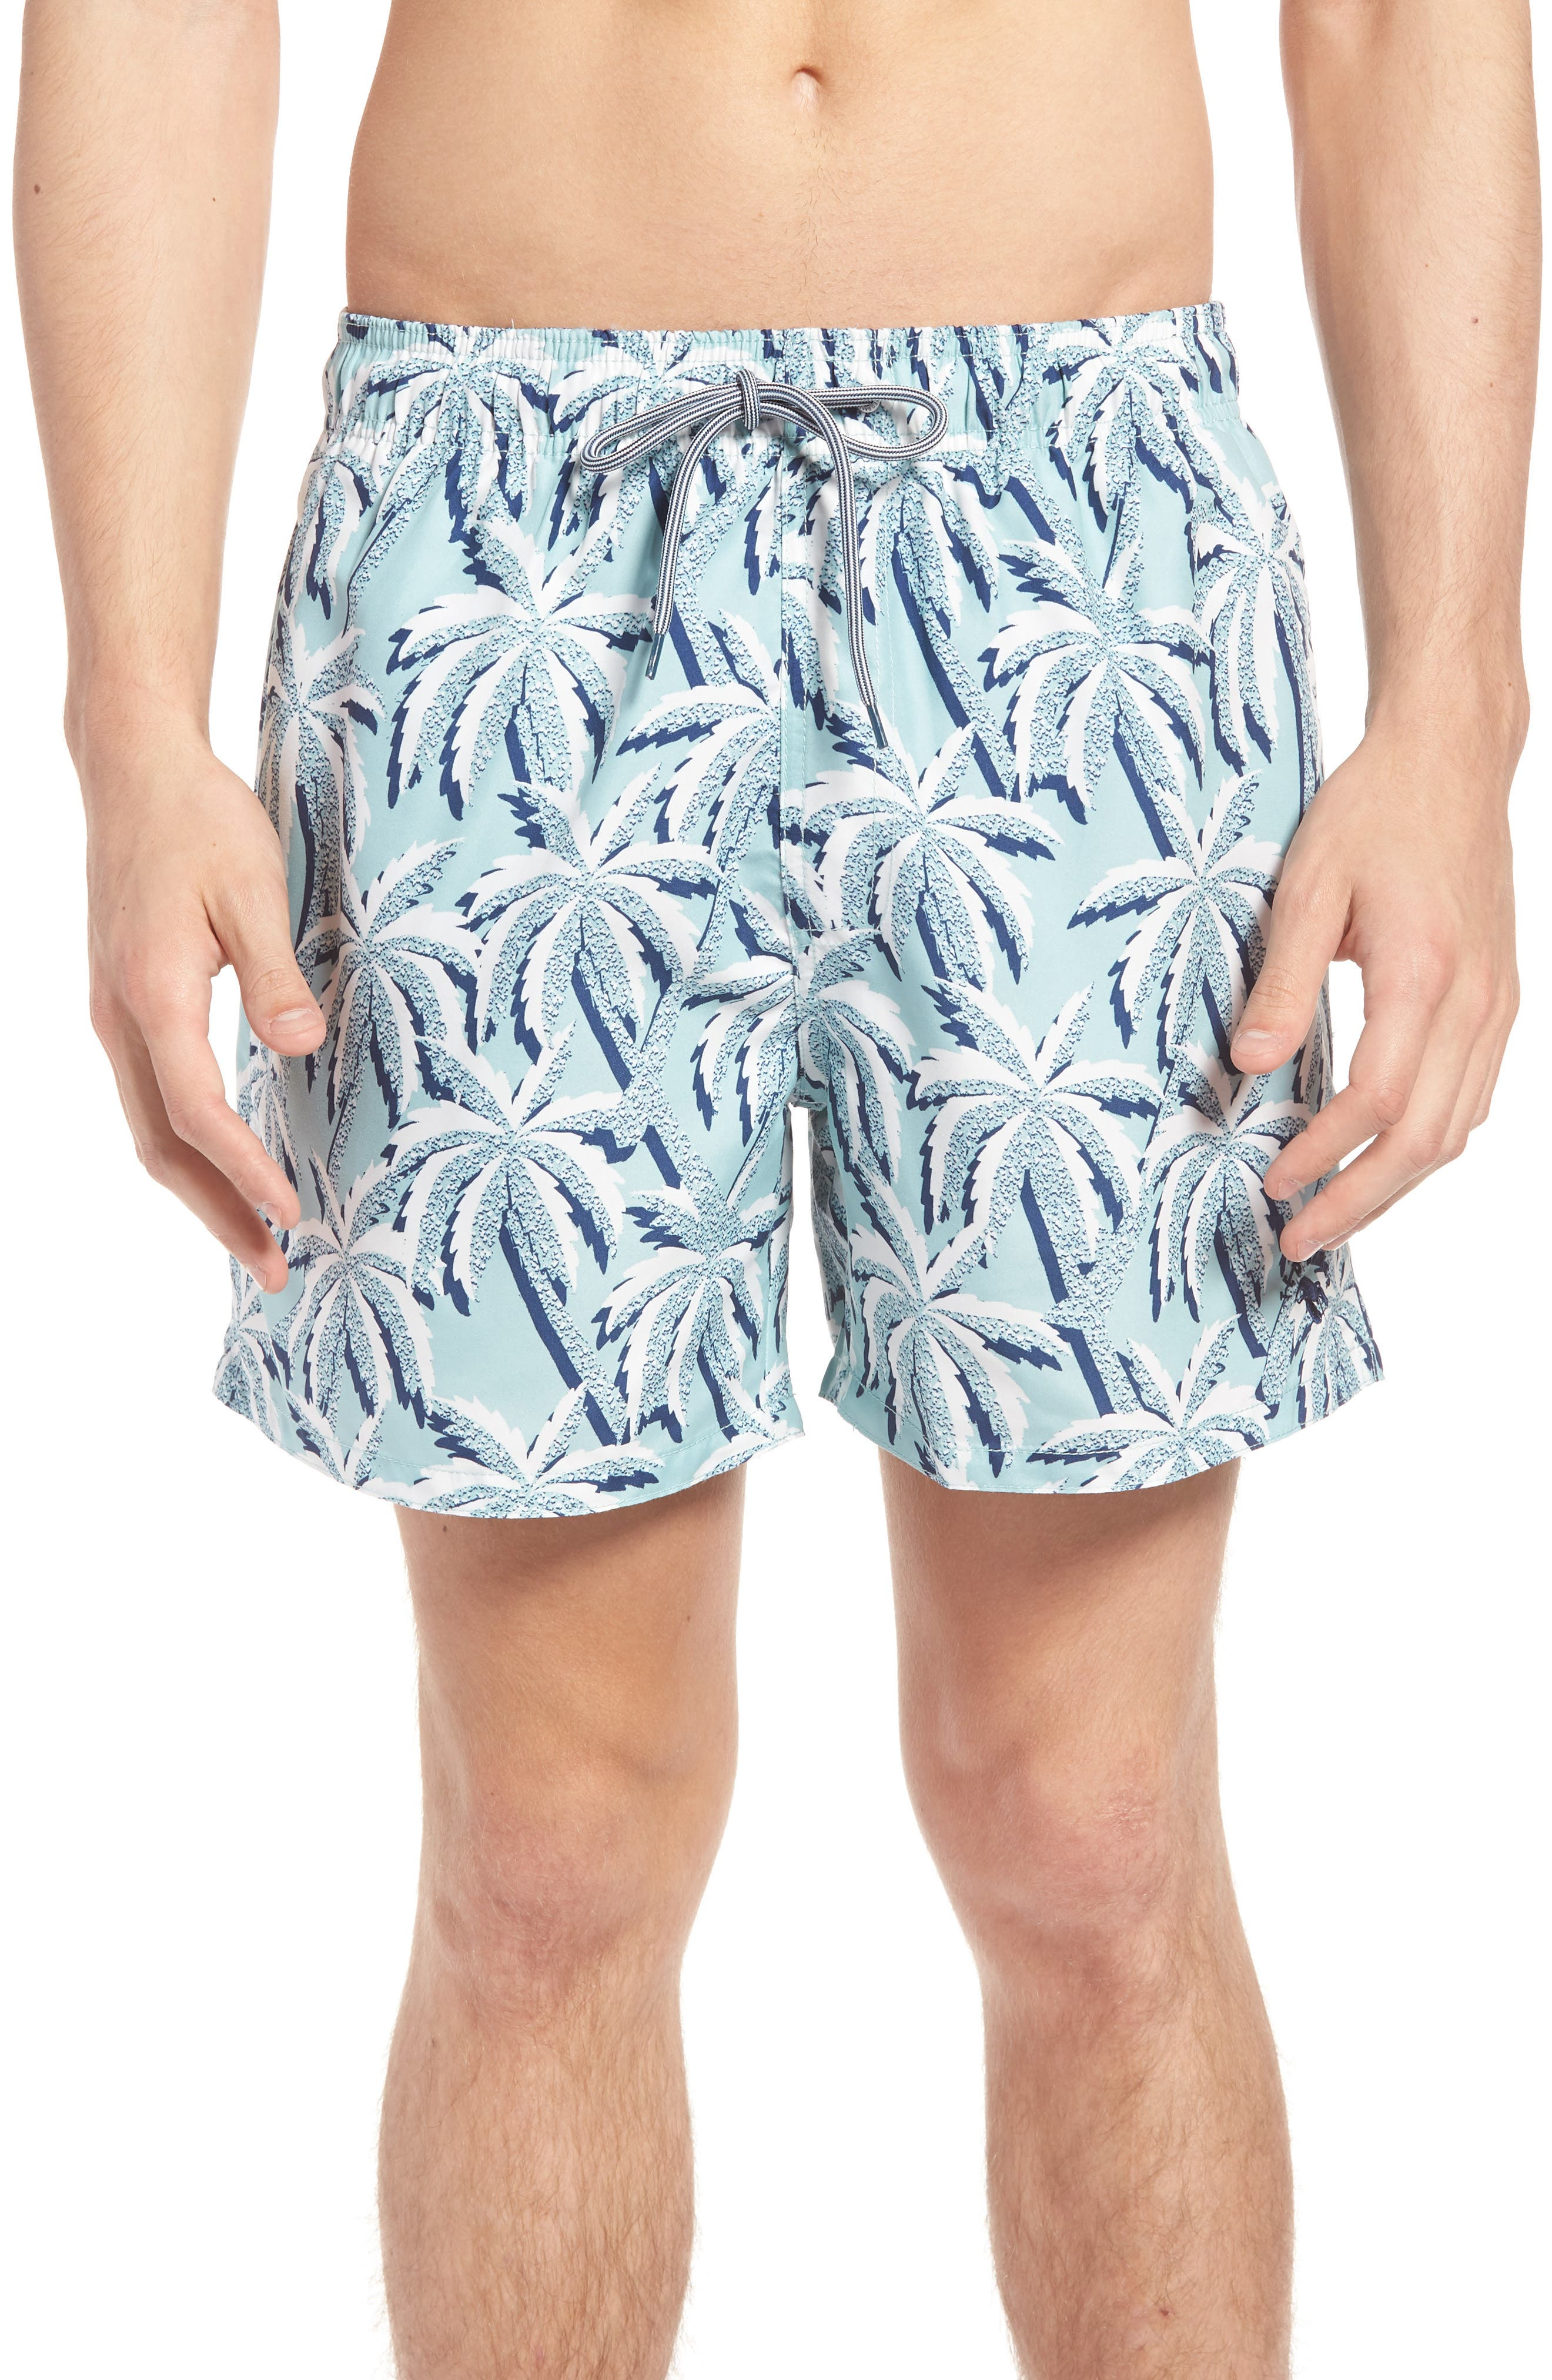 Hoppah Palm Print Swim Shorts,                             Main thumbnail 1, color,                             330